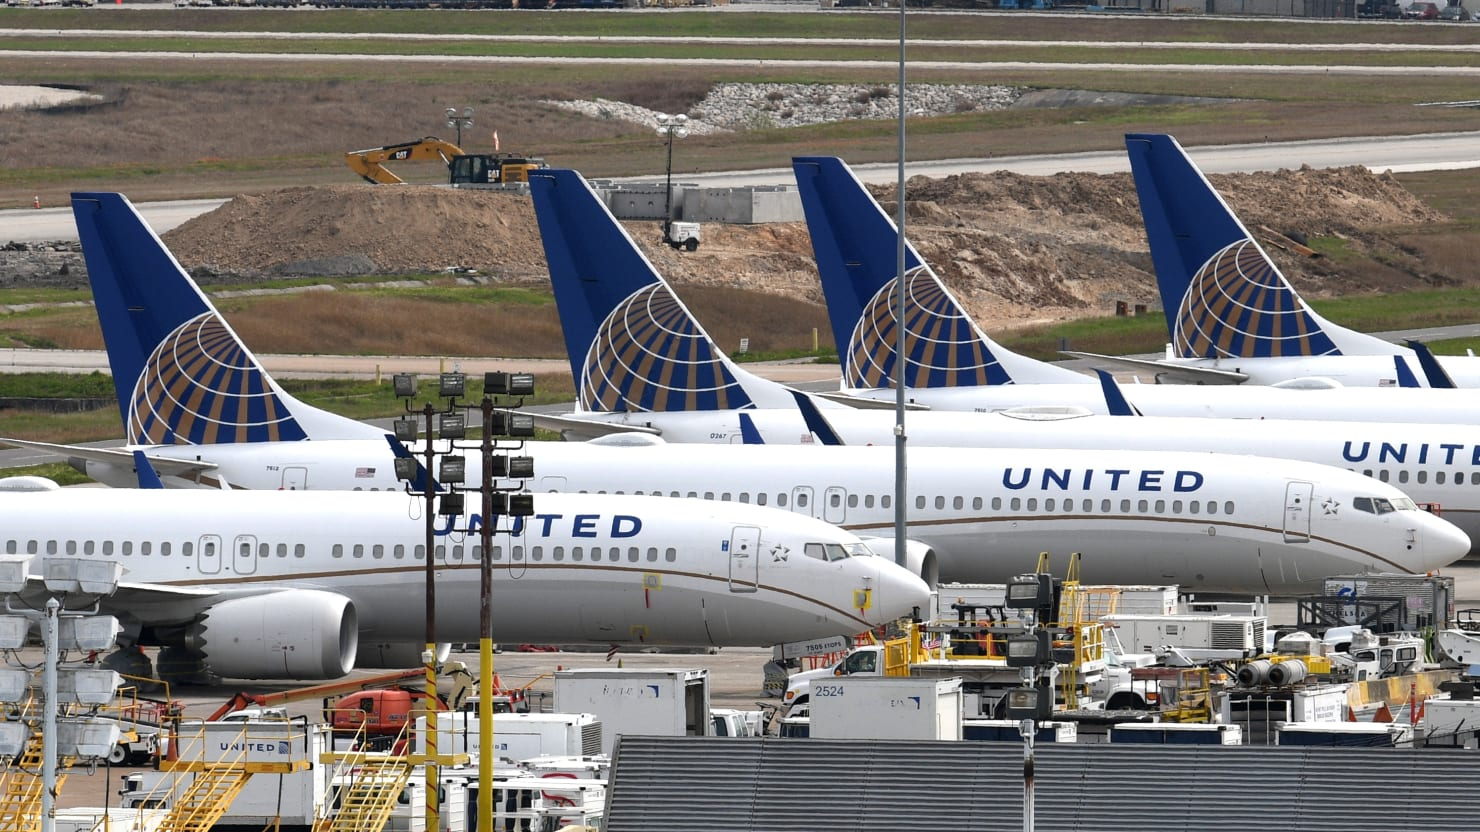 United Airlines Employee, Accused of Calling Black Woman a 'Monkey,' Charged With Racist Abuse